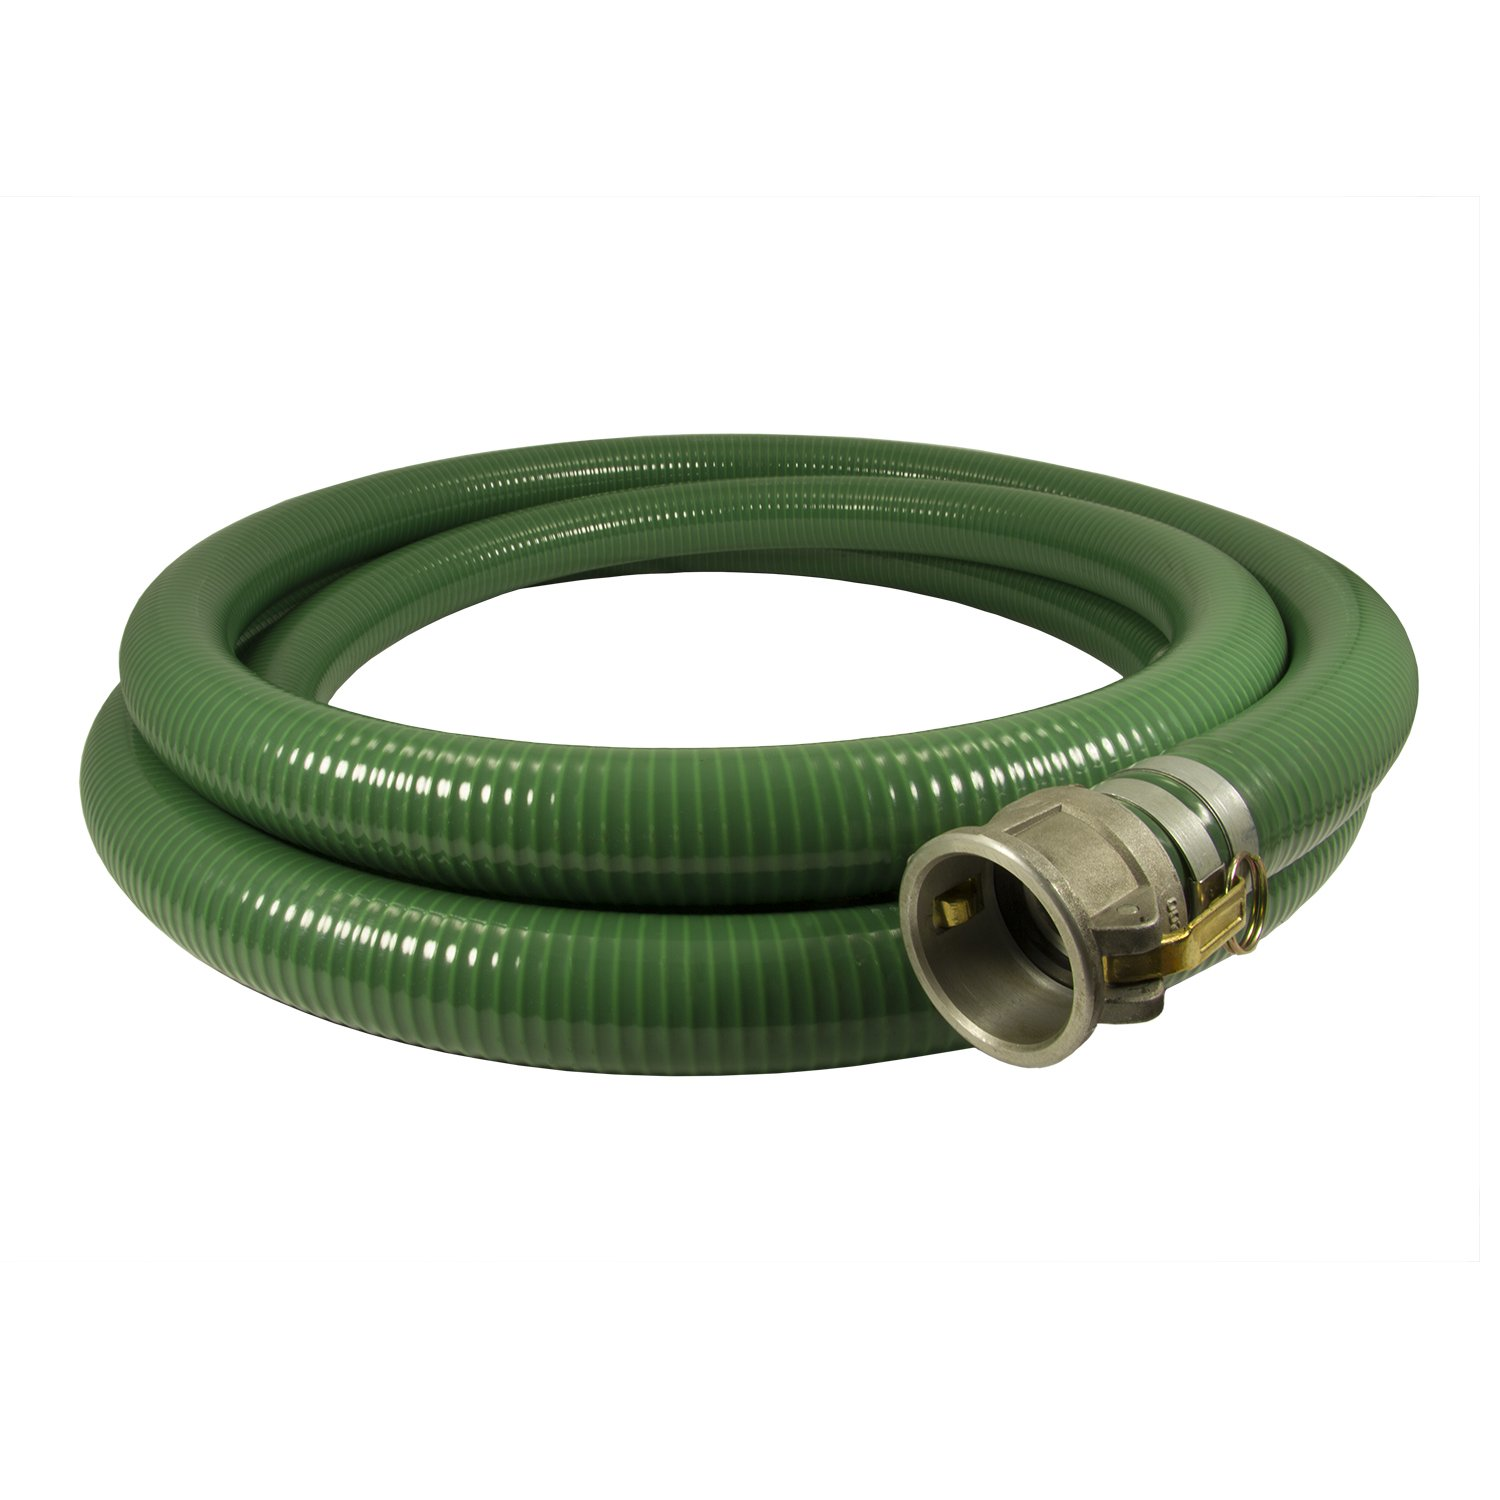 Anderson Process 4'' X 20' Green PVC Water Suction Hose Assembly w/ Cam Lock Fittings